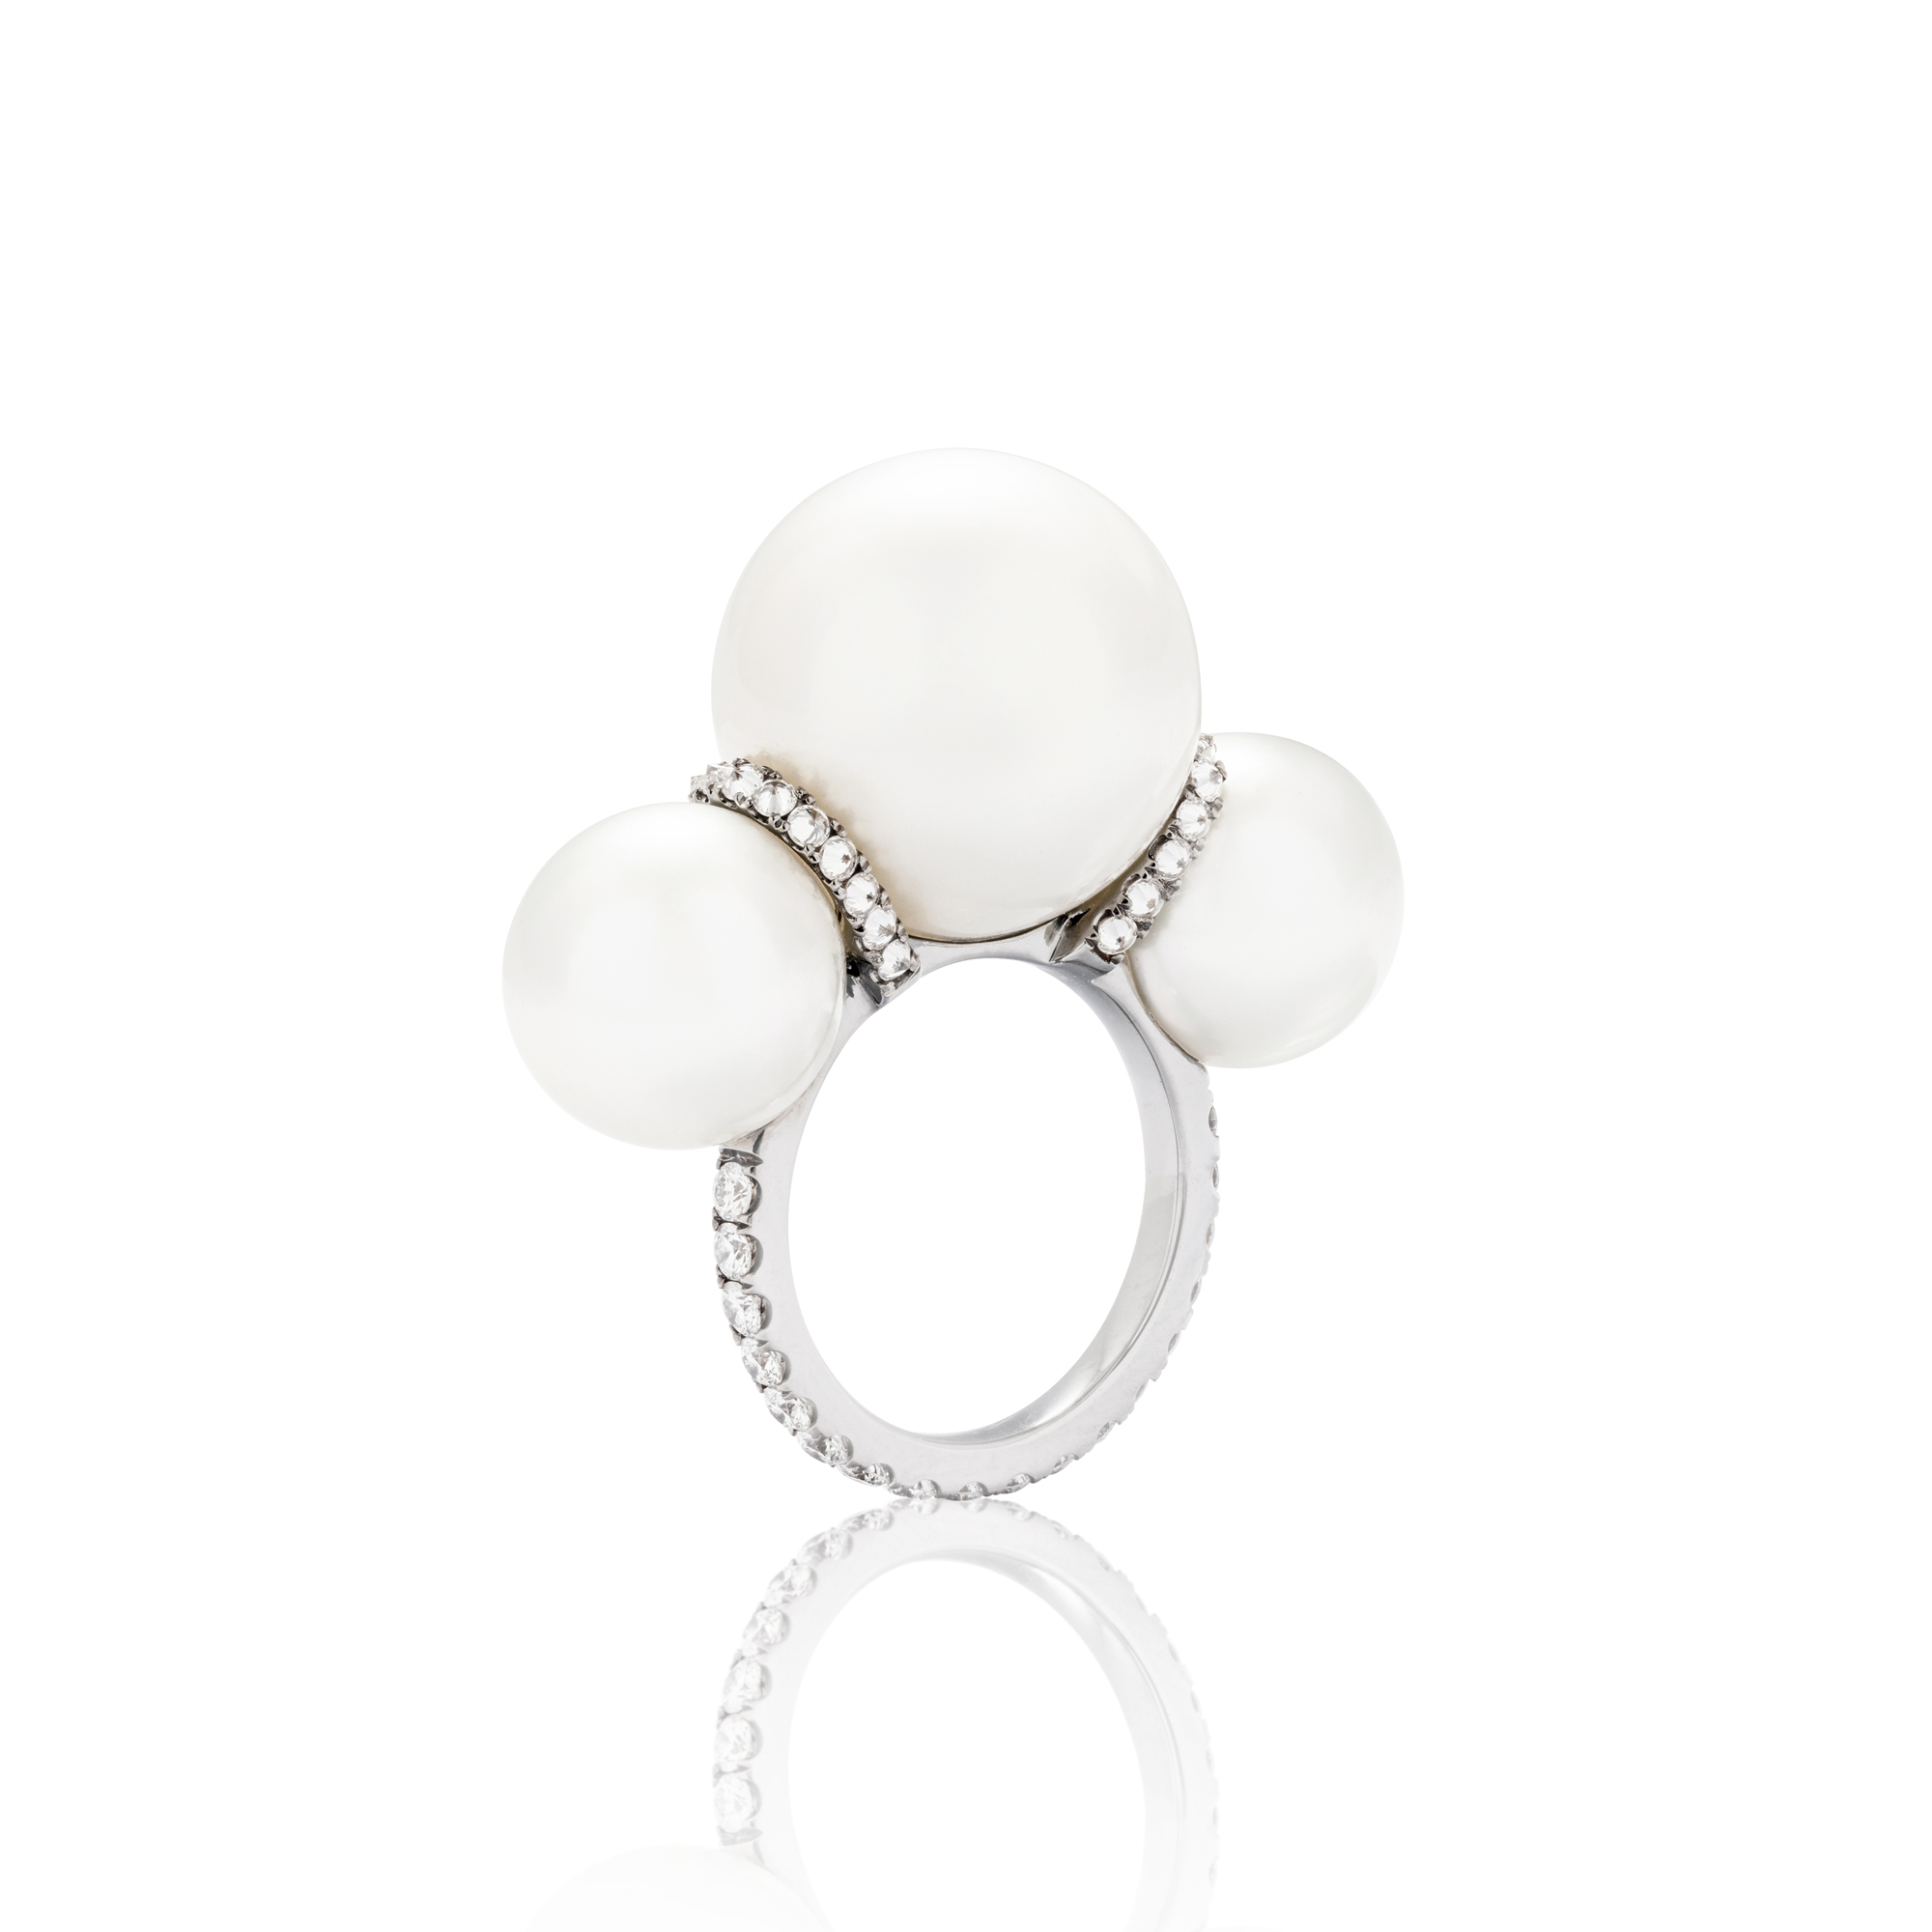 Tripple Pearl Ring Front View.jpg